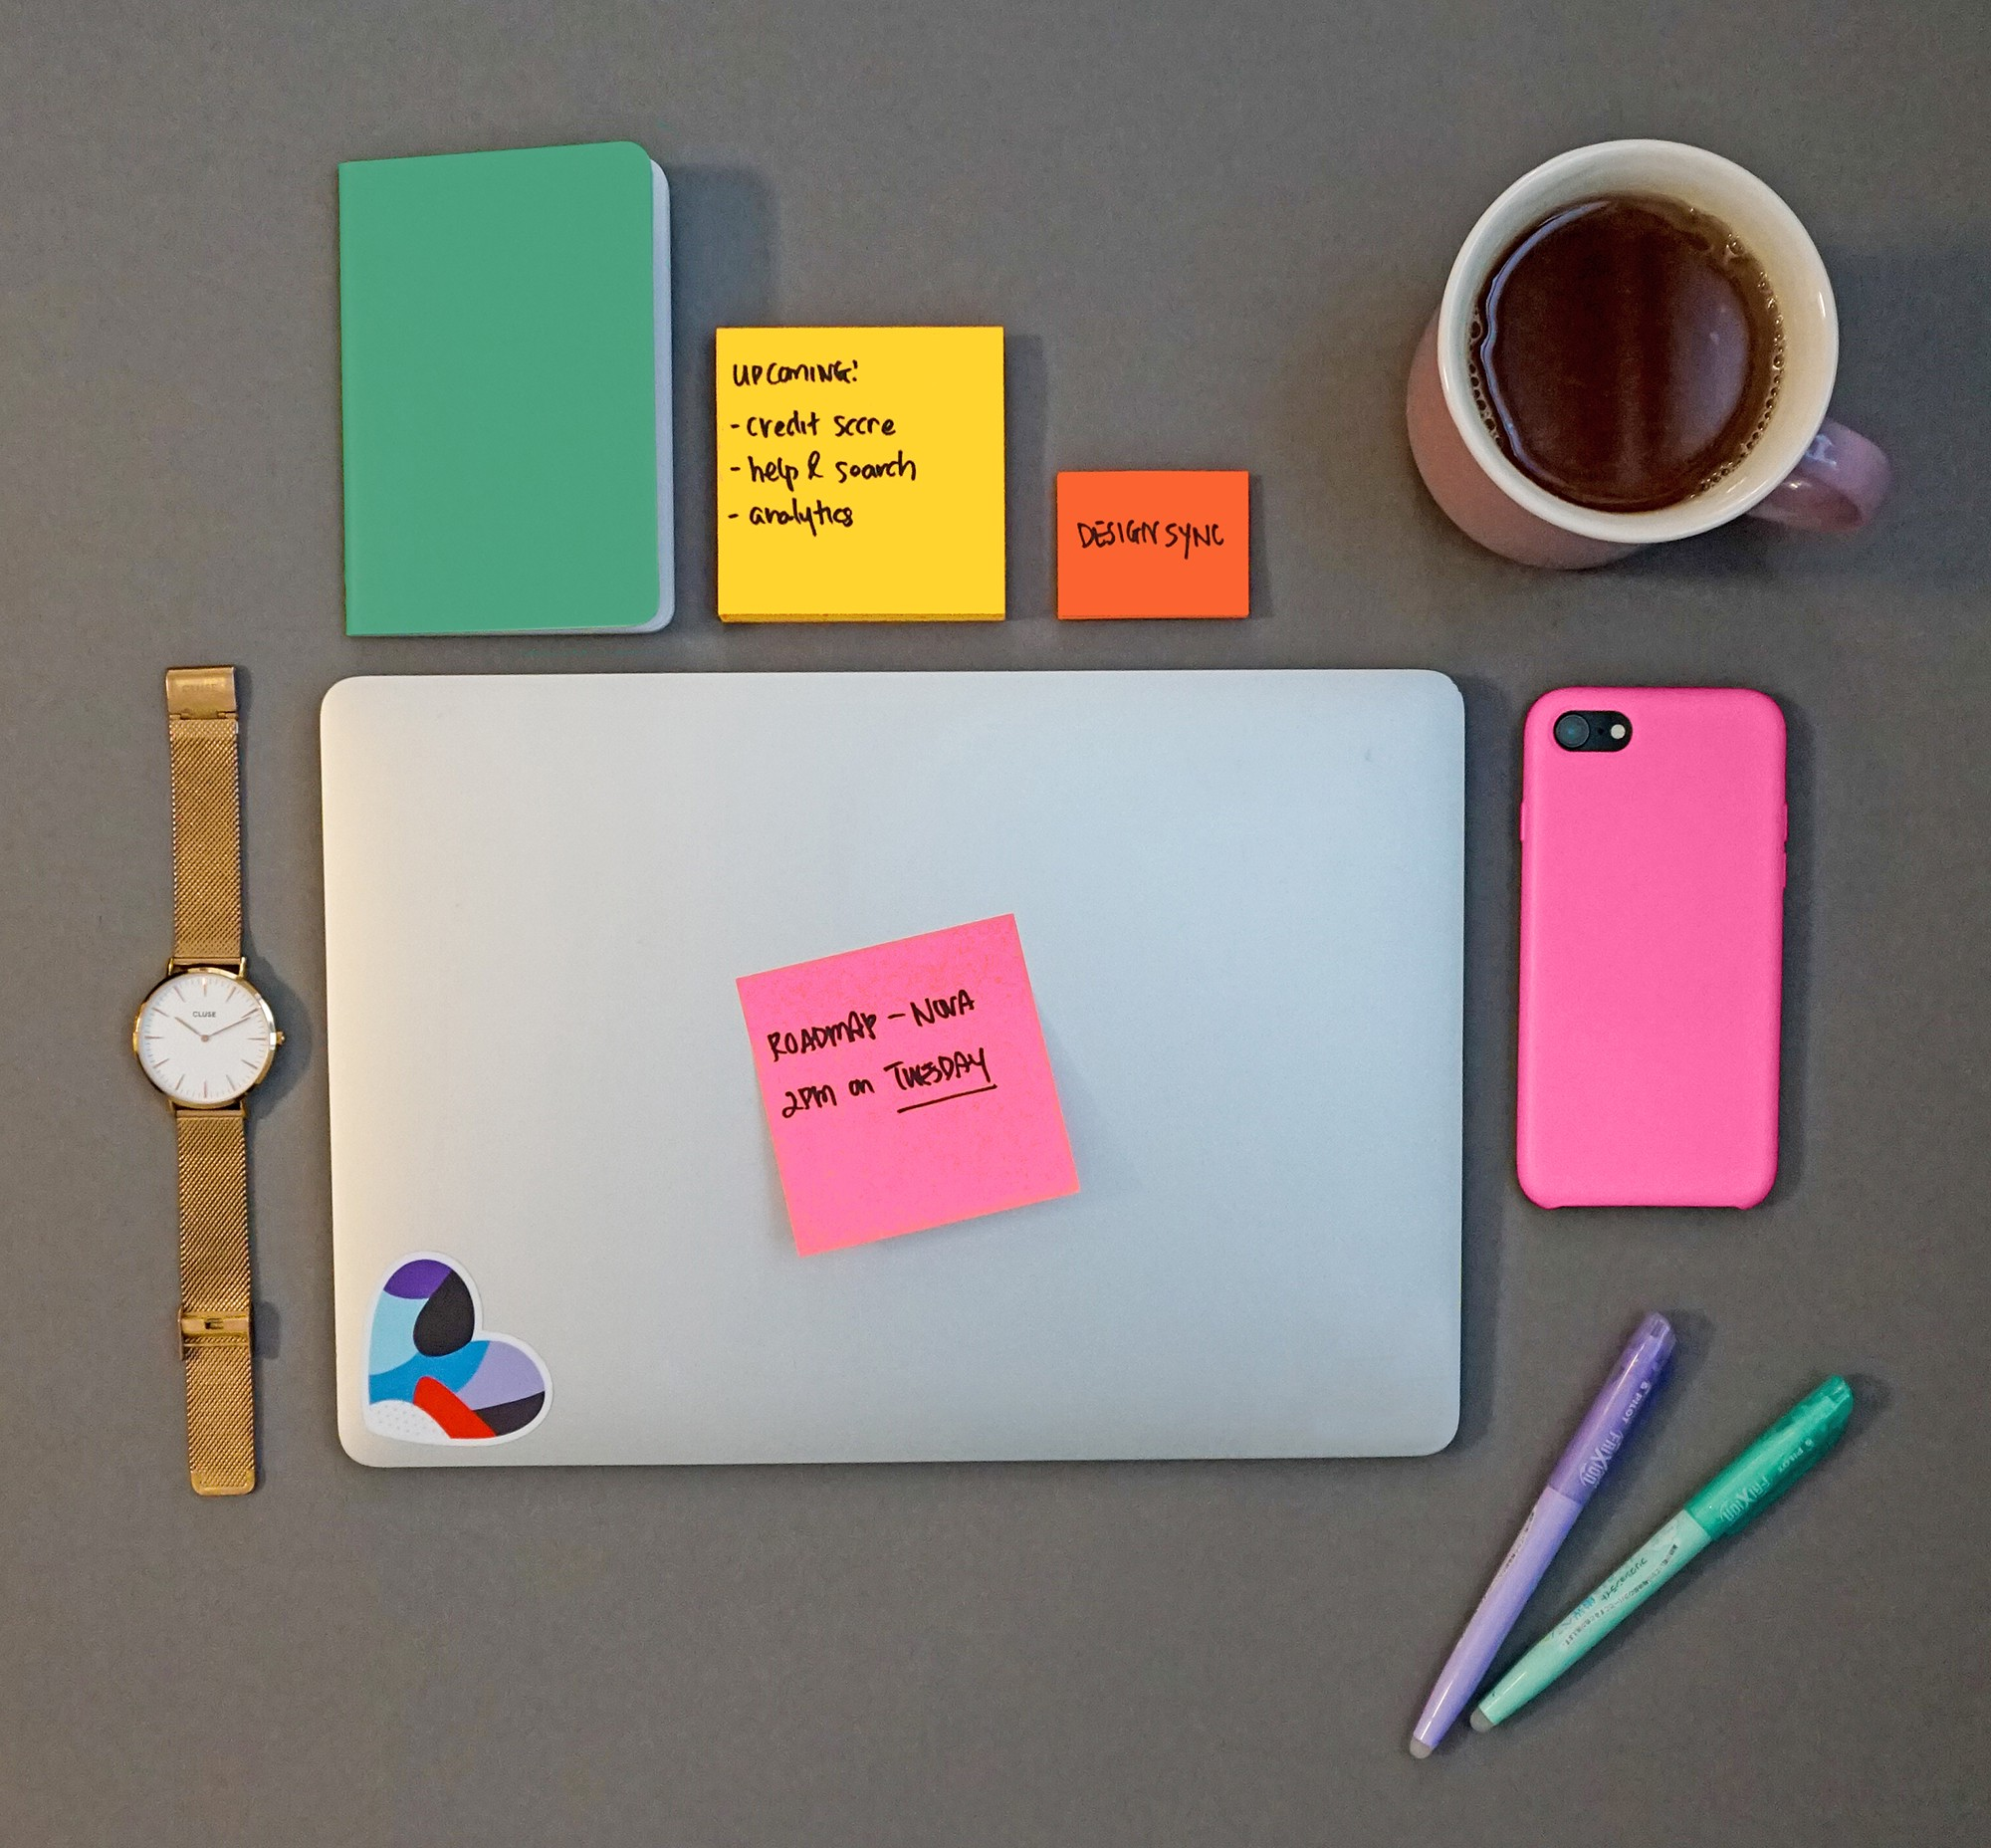 Watch, laptop, phone, post-it notes, and a cup of coffee